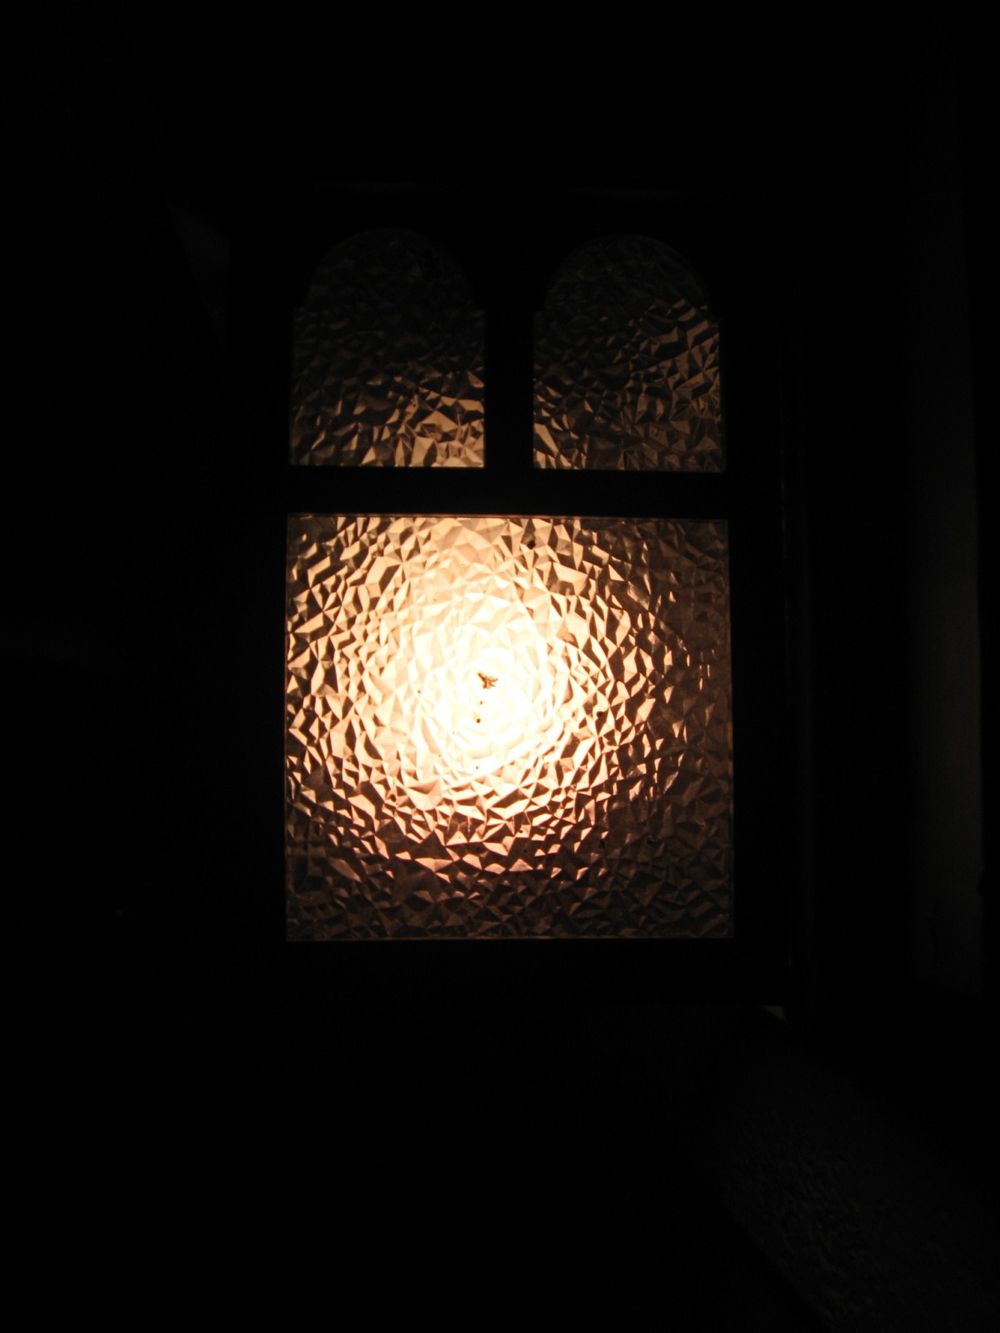 lantern in the night.jpg